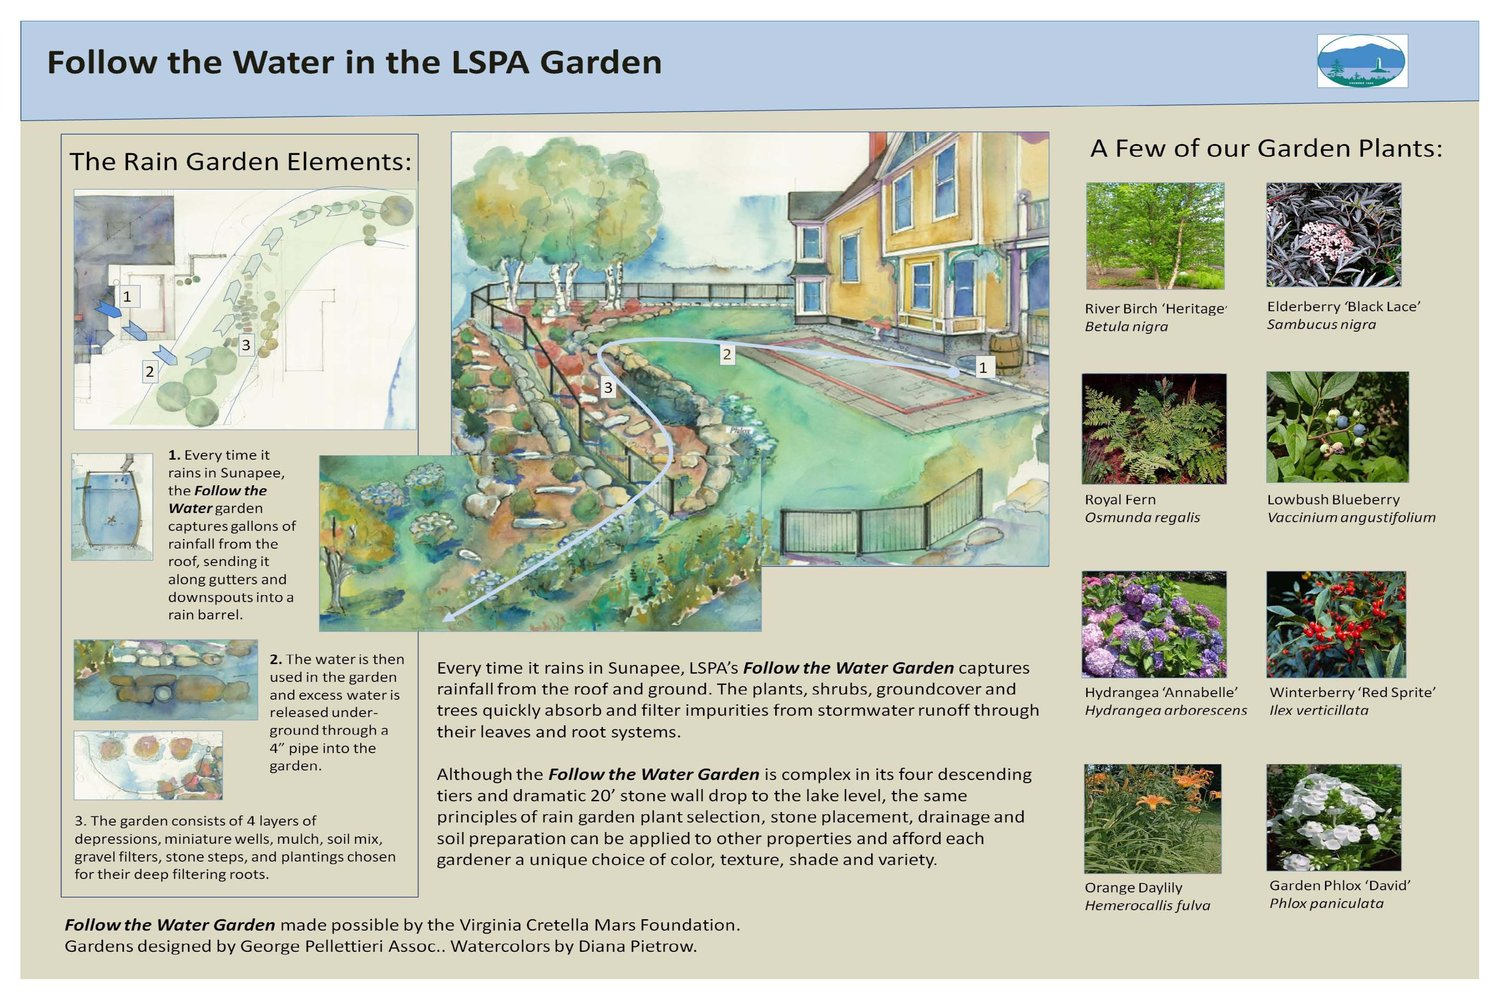 Your Yard and Clean Water — LSPA Rain Garden Design Steps Plans on burn pit design plans, raised bed vegetable garden design plans, large garden layout plans, patio garden design plans, border garden design plans, cottage garden design plans, fountain design plans, rose garden design plans, container garden design plans, butterfly garden design plans, residential landscape design plans, small garden design plans, roof garden design plans, community garden design plans, perennial garden design plans, tropical garden design plans, prairie garden design plans, design your own garden plans, small wind turbine design plans, green roof design plans,